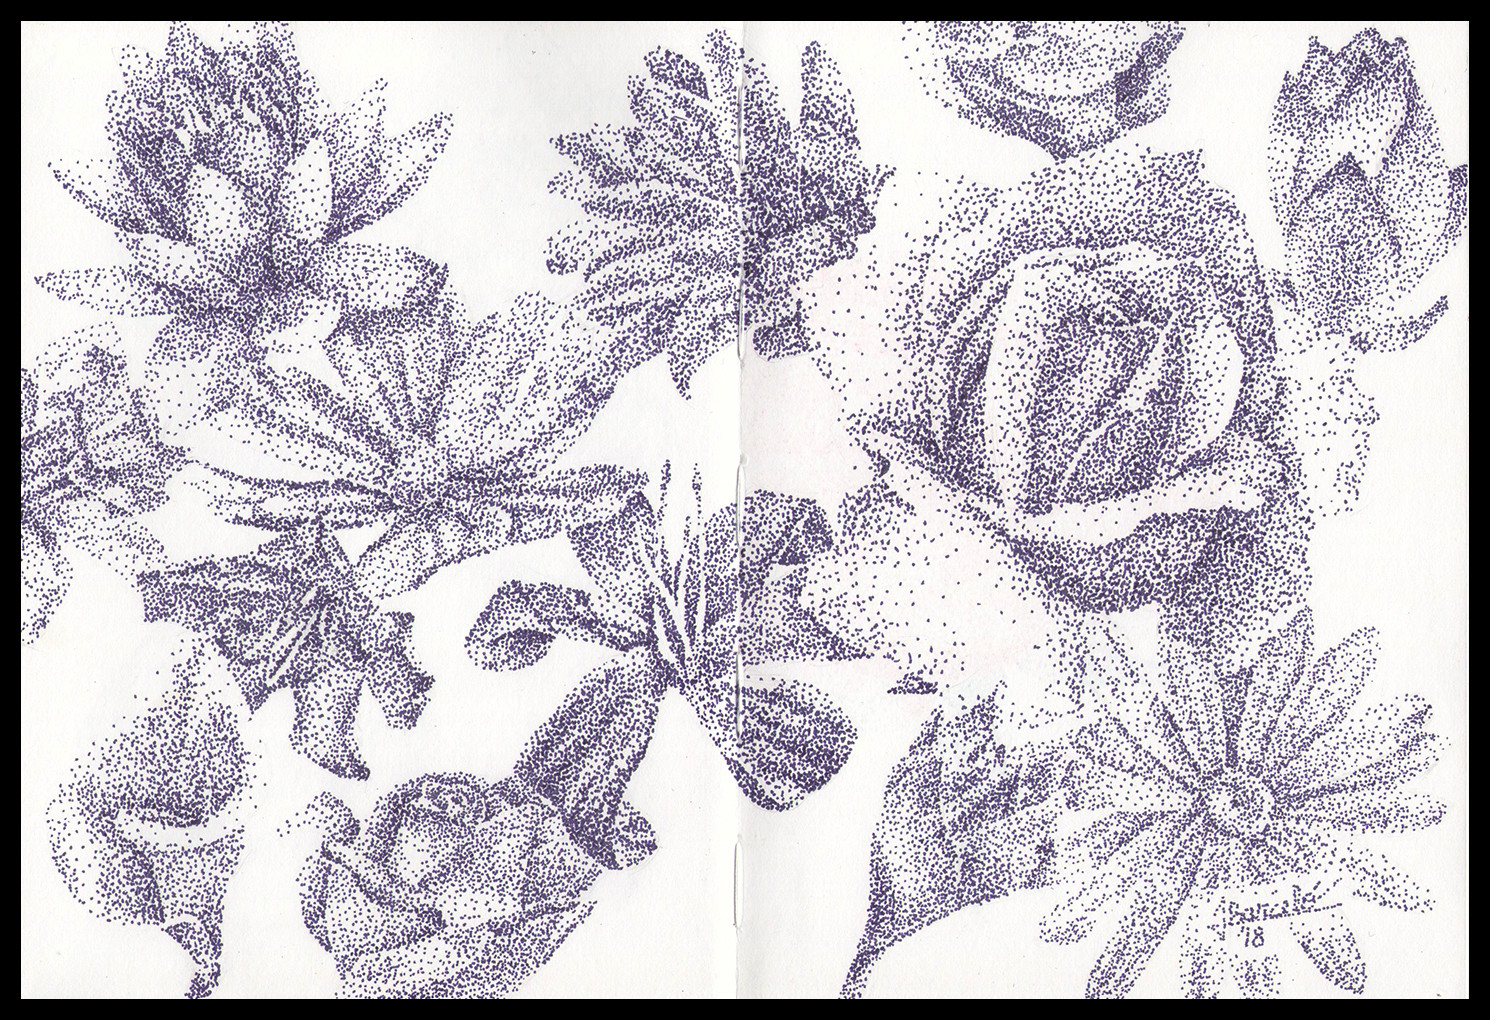 Flower study using pointillism.